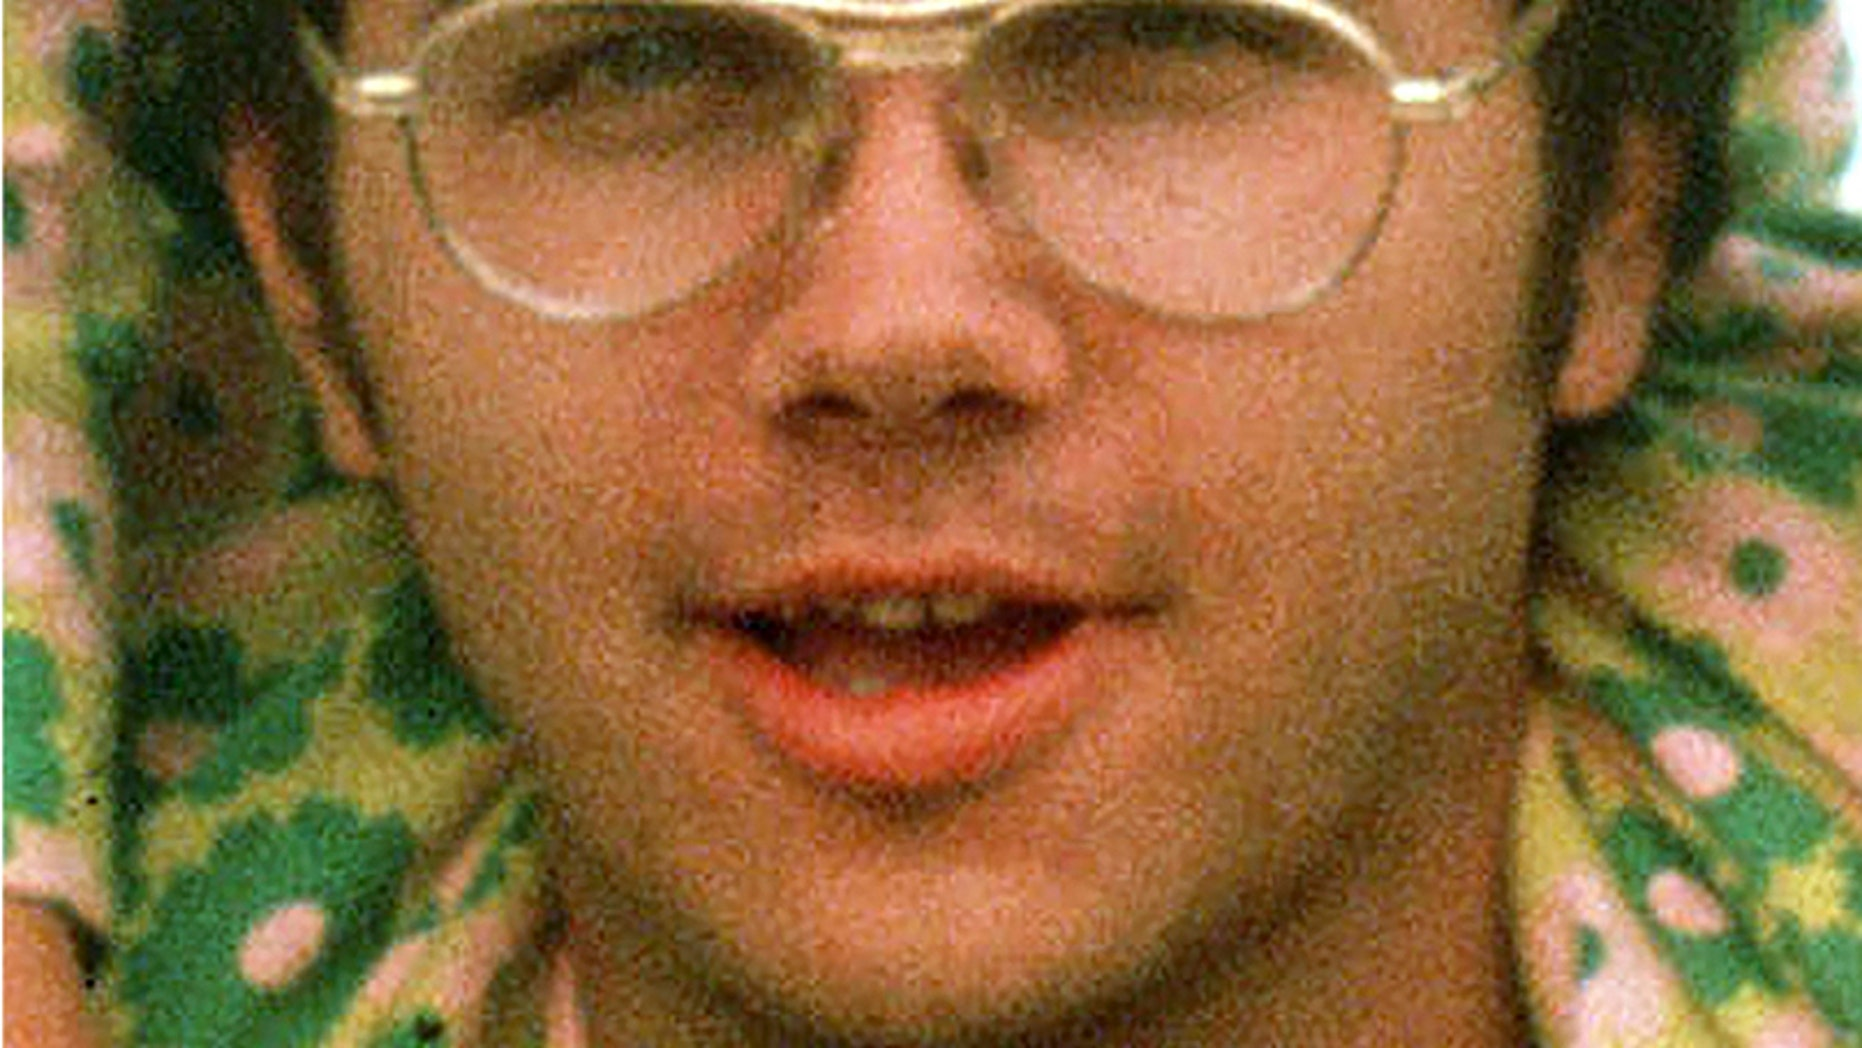 FILE - In this 1975 file photo, Mark David Chapman is seen at Fort Chaffee near Fort Smith, Ark.